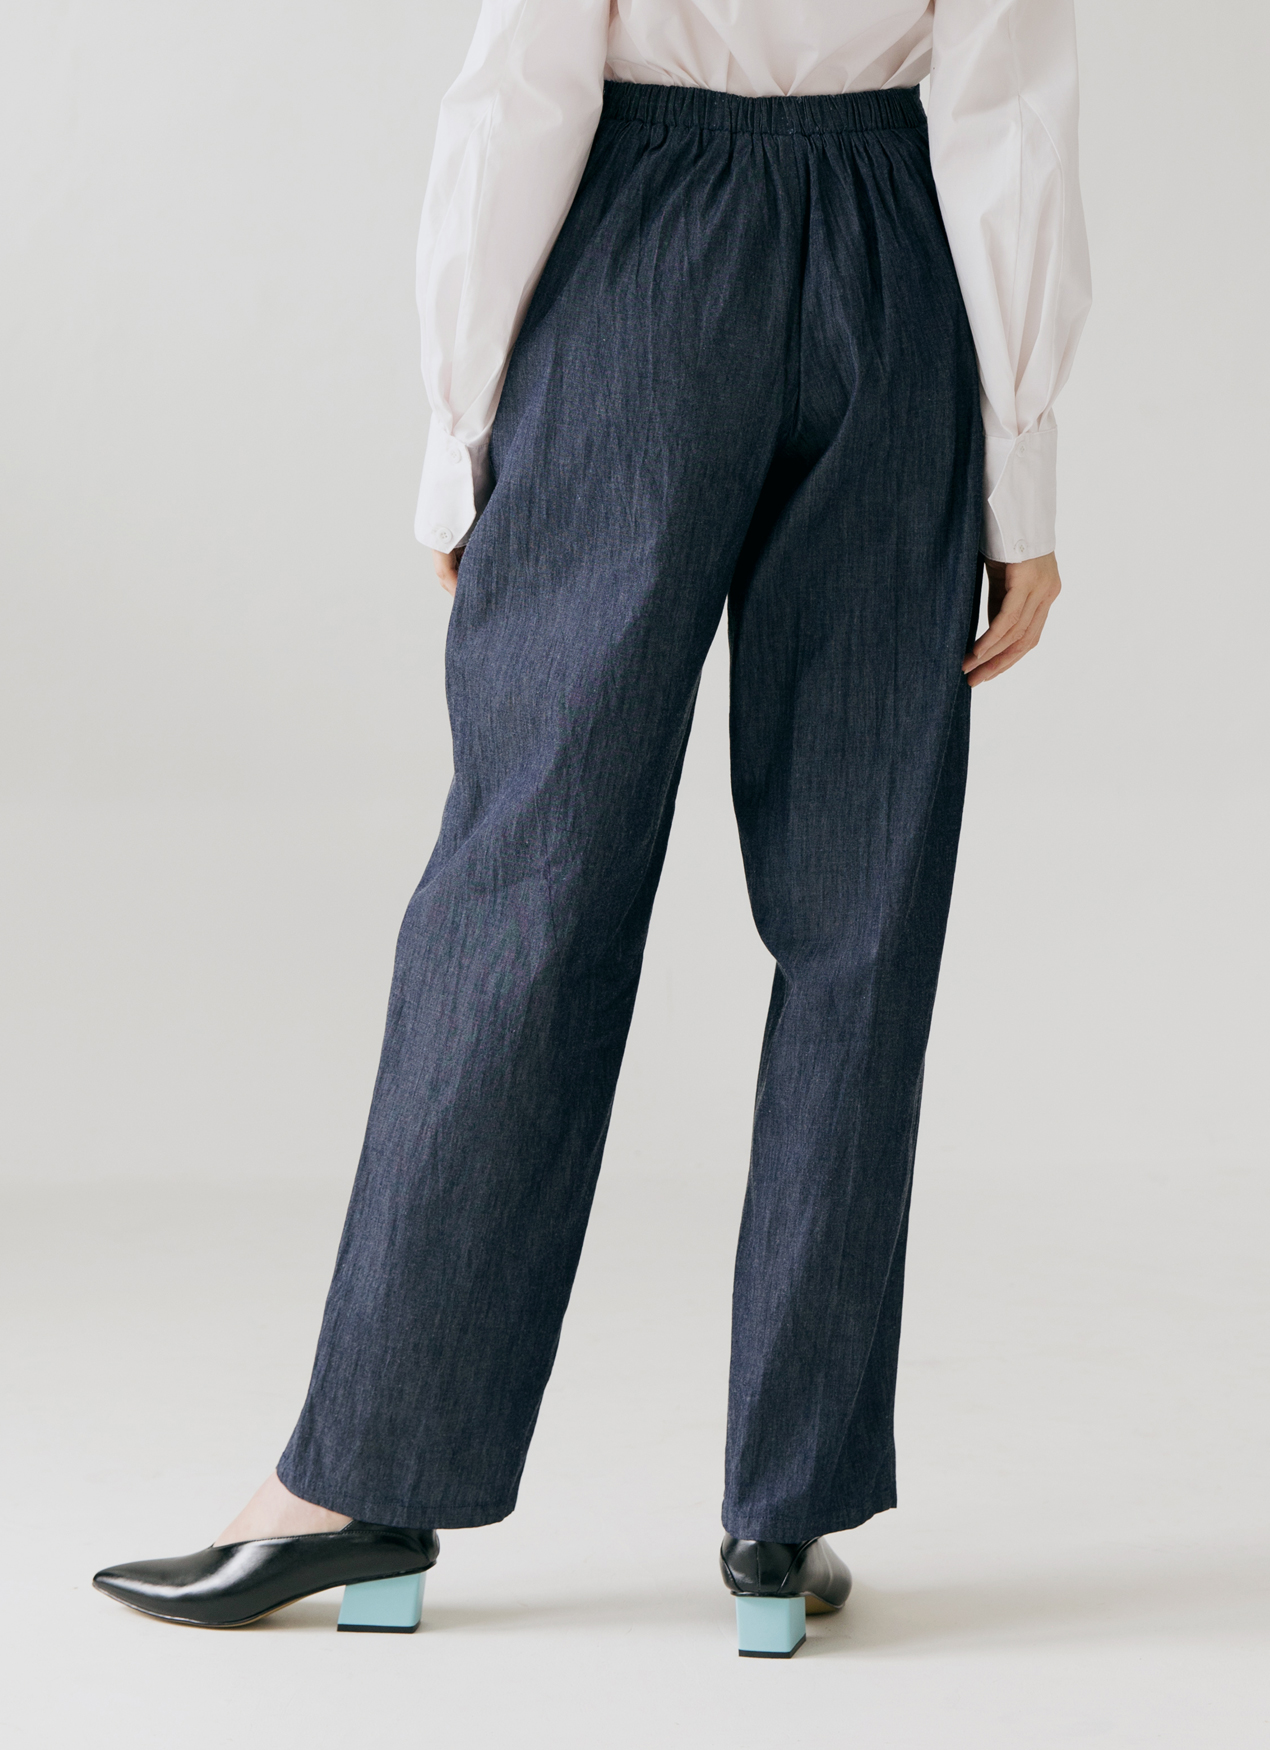 ATS THE LABEL Torikdanumaya Pants - Denim